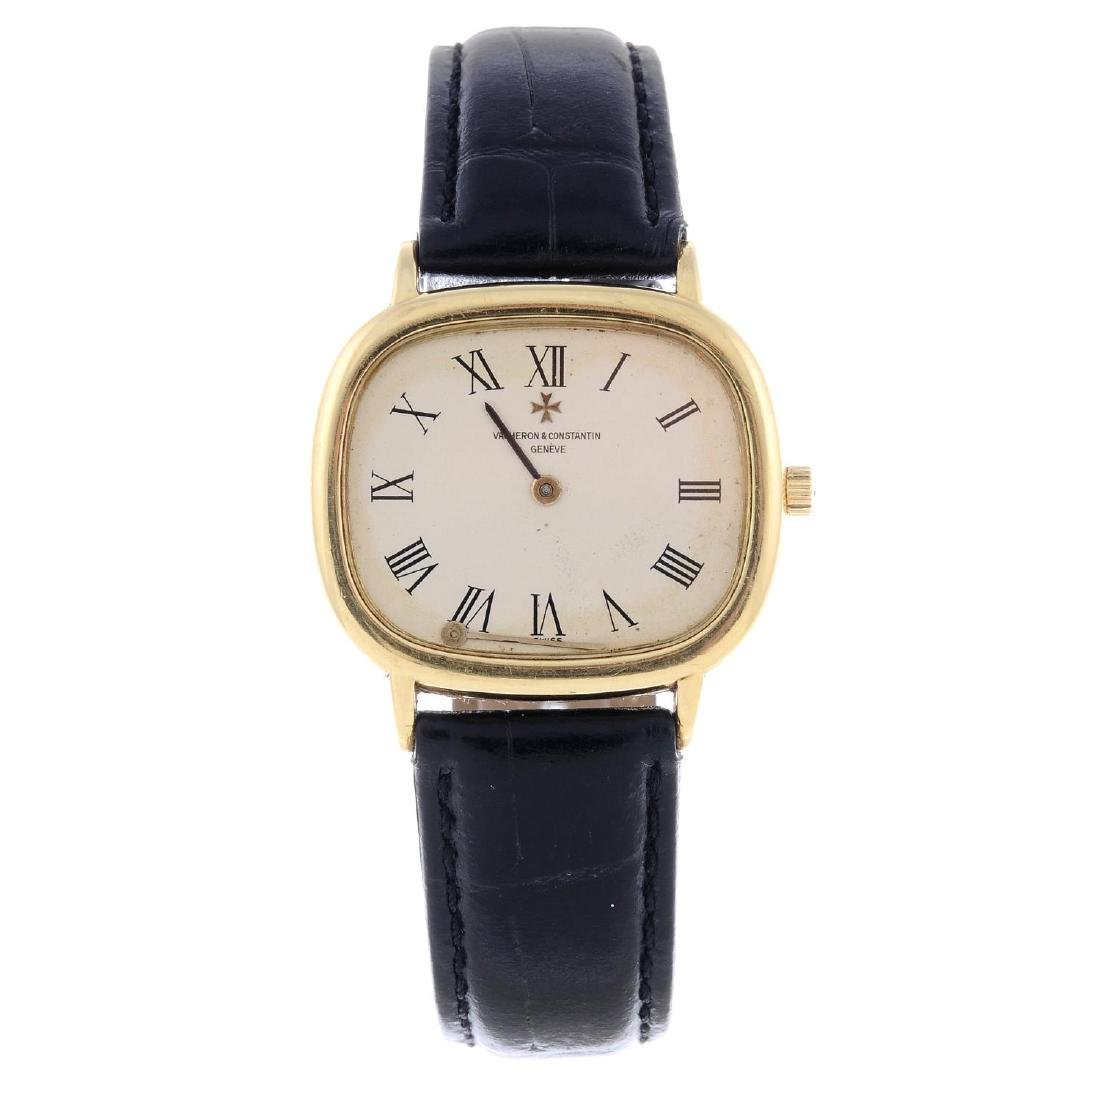 VACHERON CONSTANTIN -  a gentleman's wrist watch.